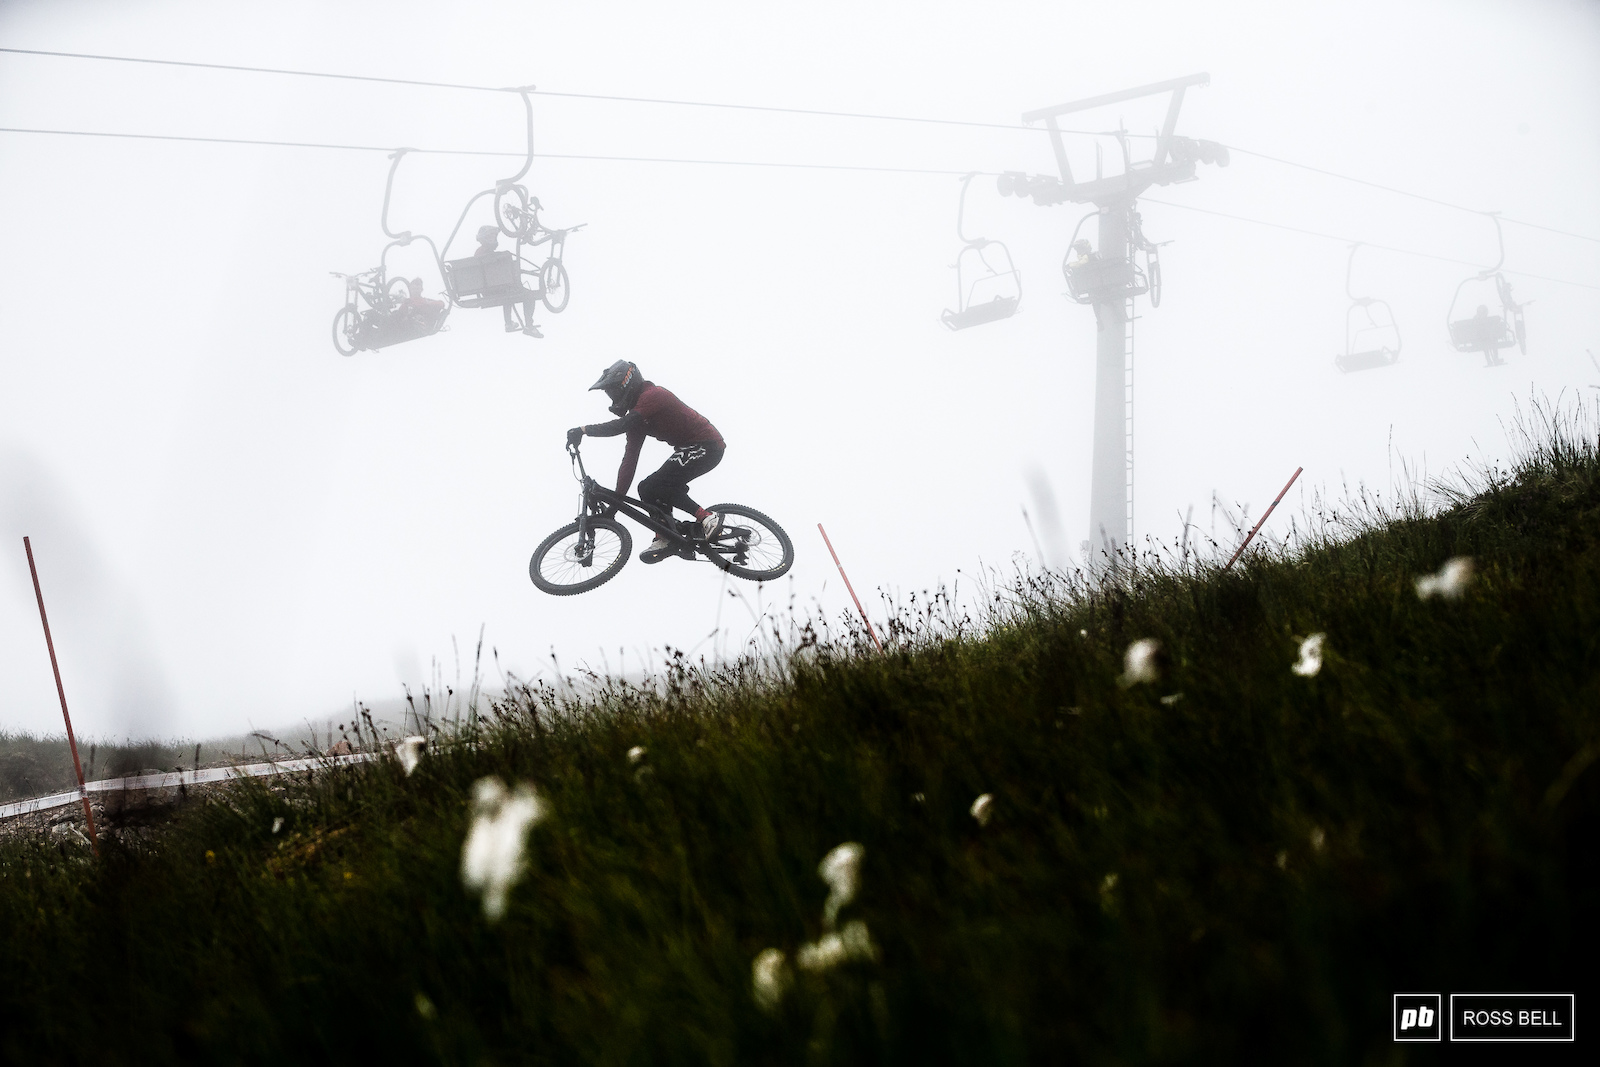 Sunday morning started off shrouded in cloud. Greg Williamson keeps it low over the moorland.